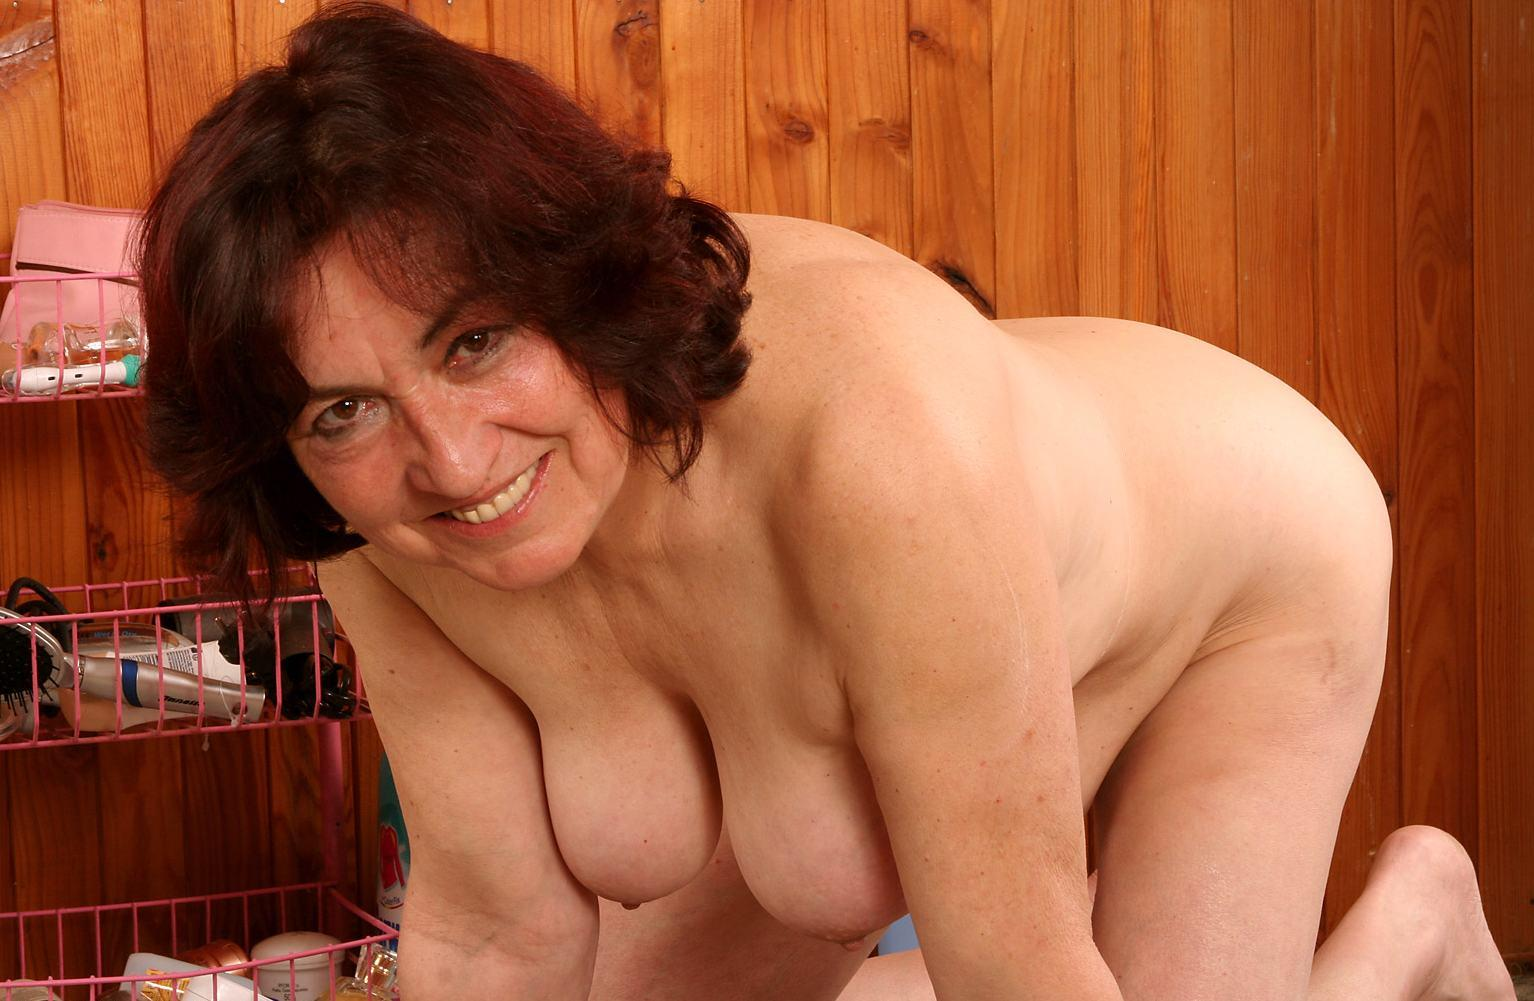 64 year old and british granny sandie rubs her old pussy 5